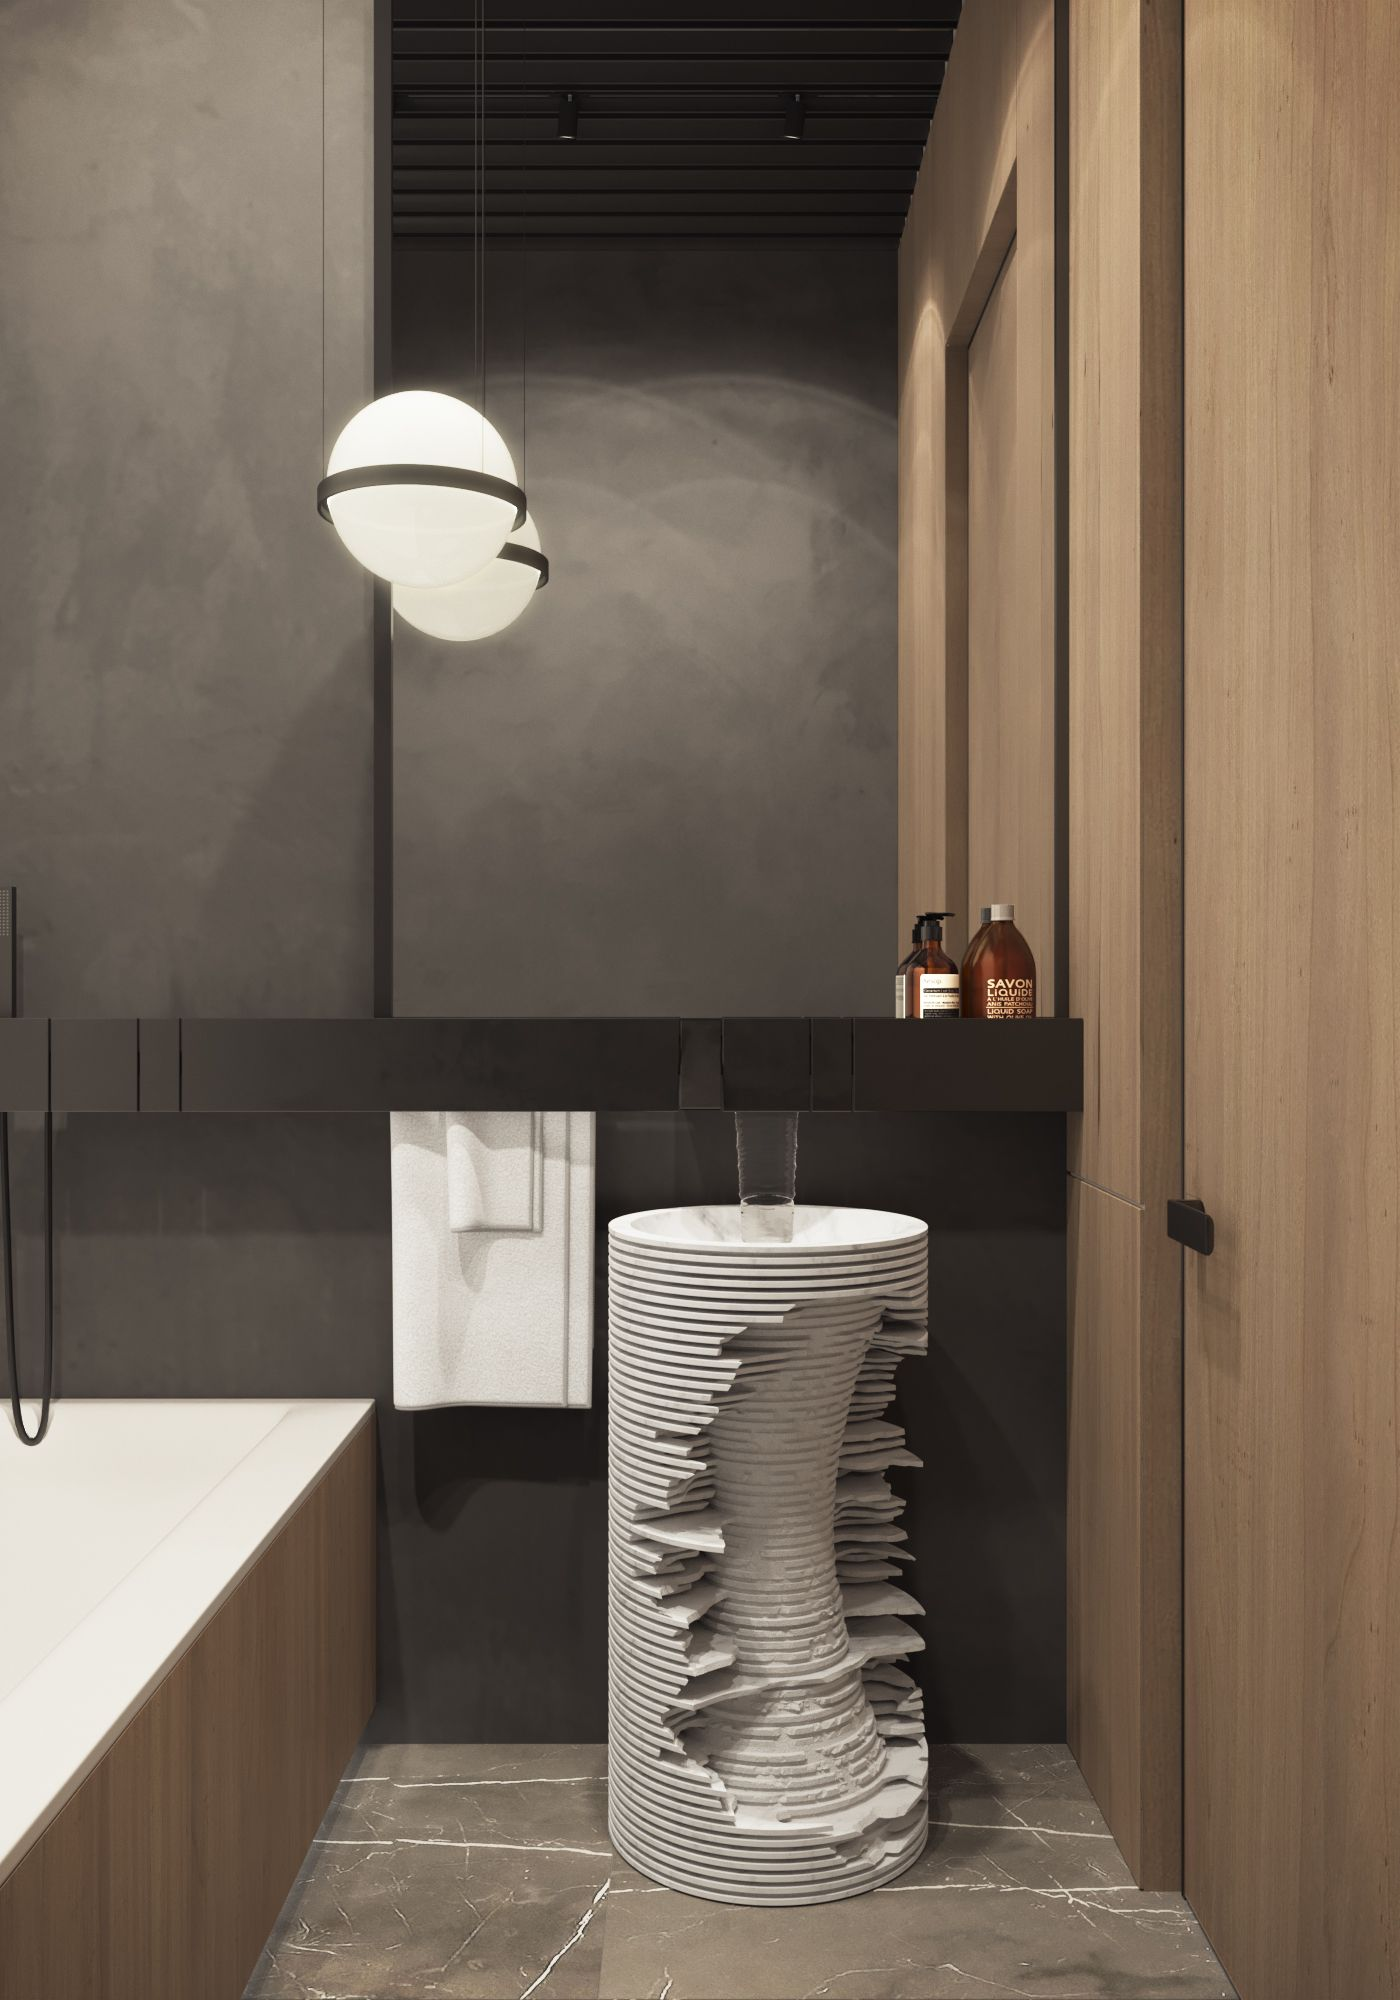 Guest bathroom  #oniproject  #bathroom #agape #vibia #wood  #tile #vibia